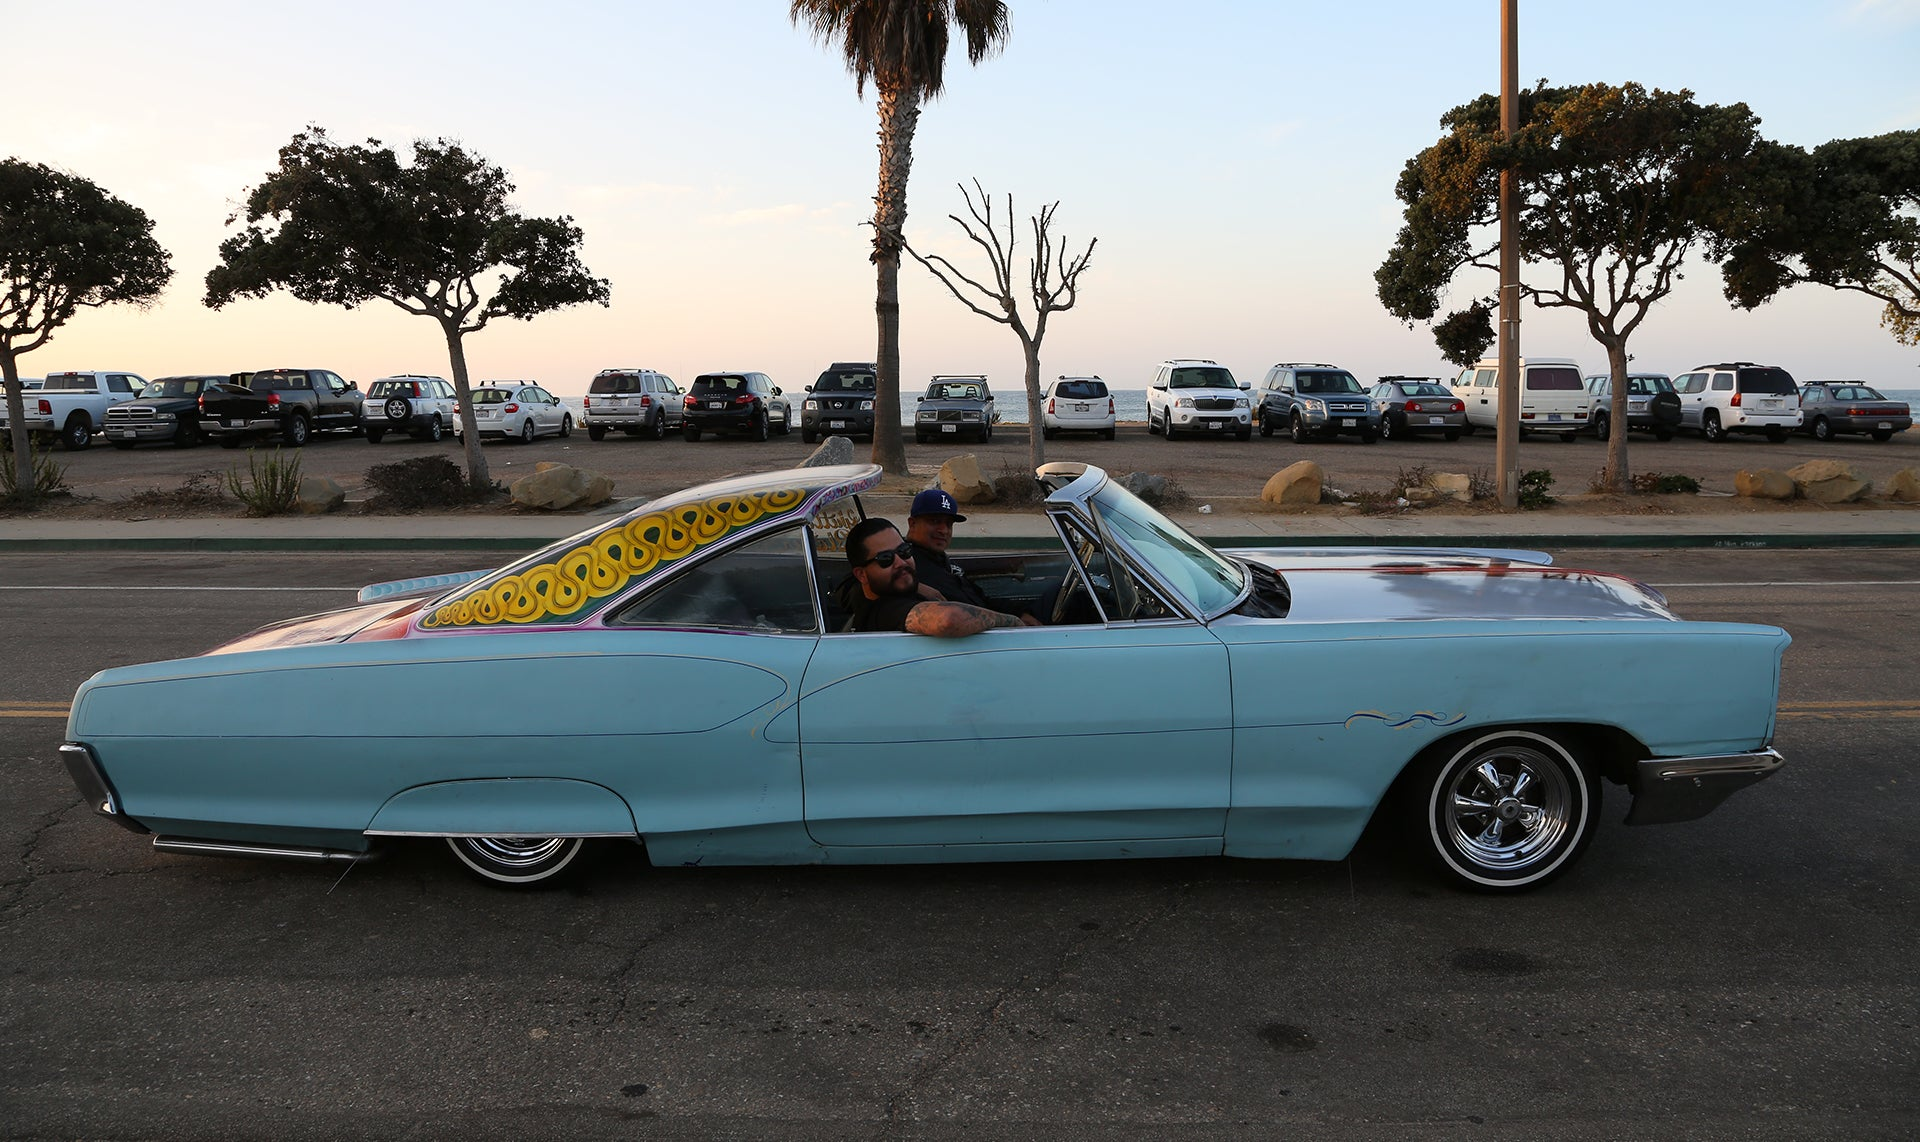 Our friend Mr. Rhythm in a hollywood top lowrider